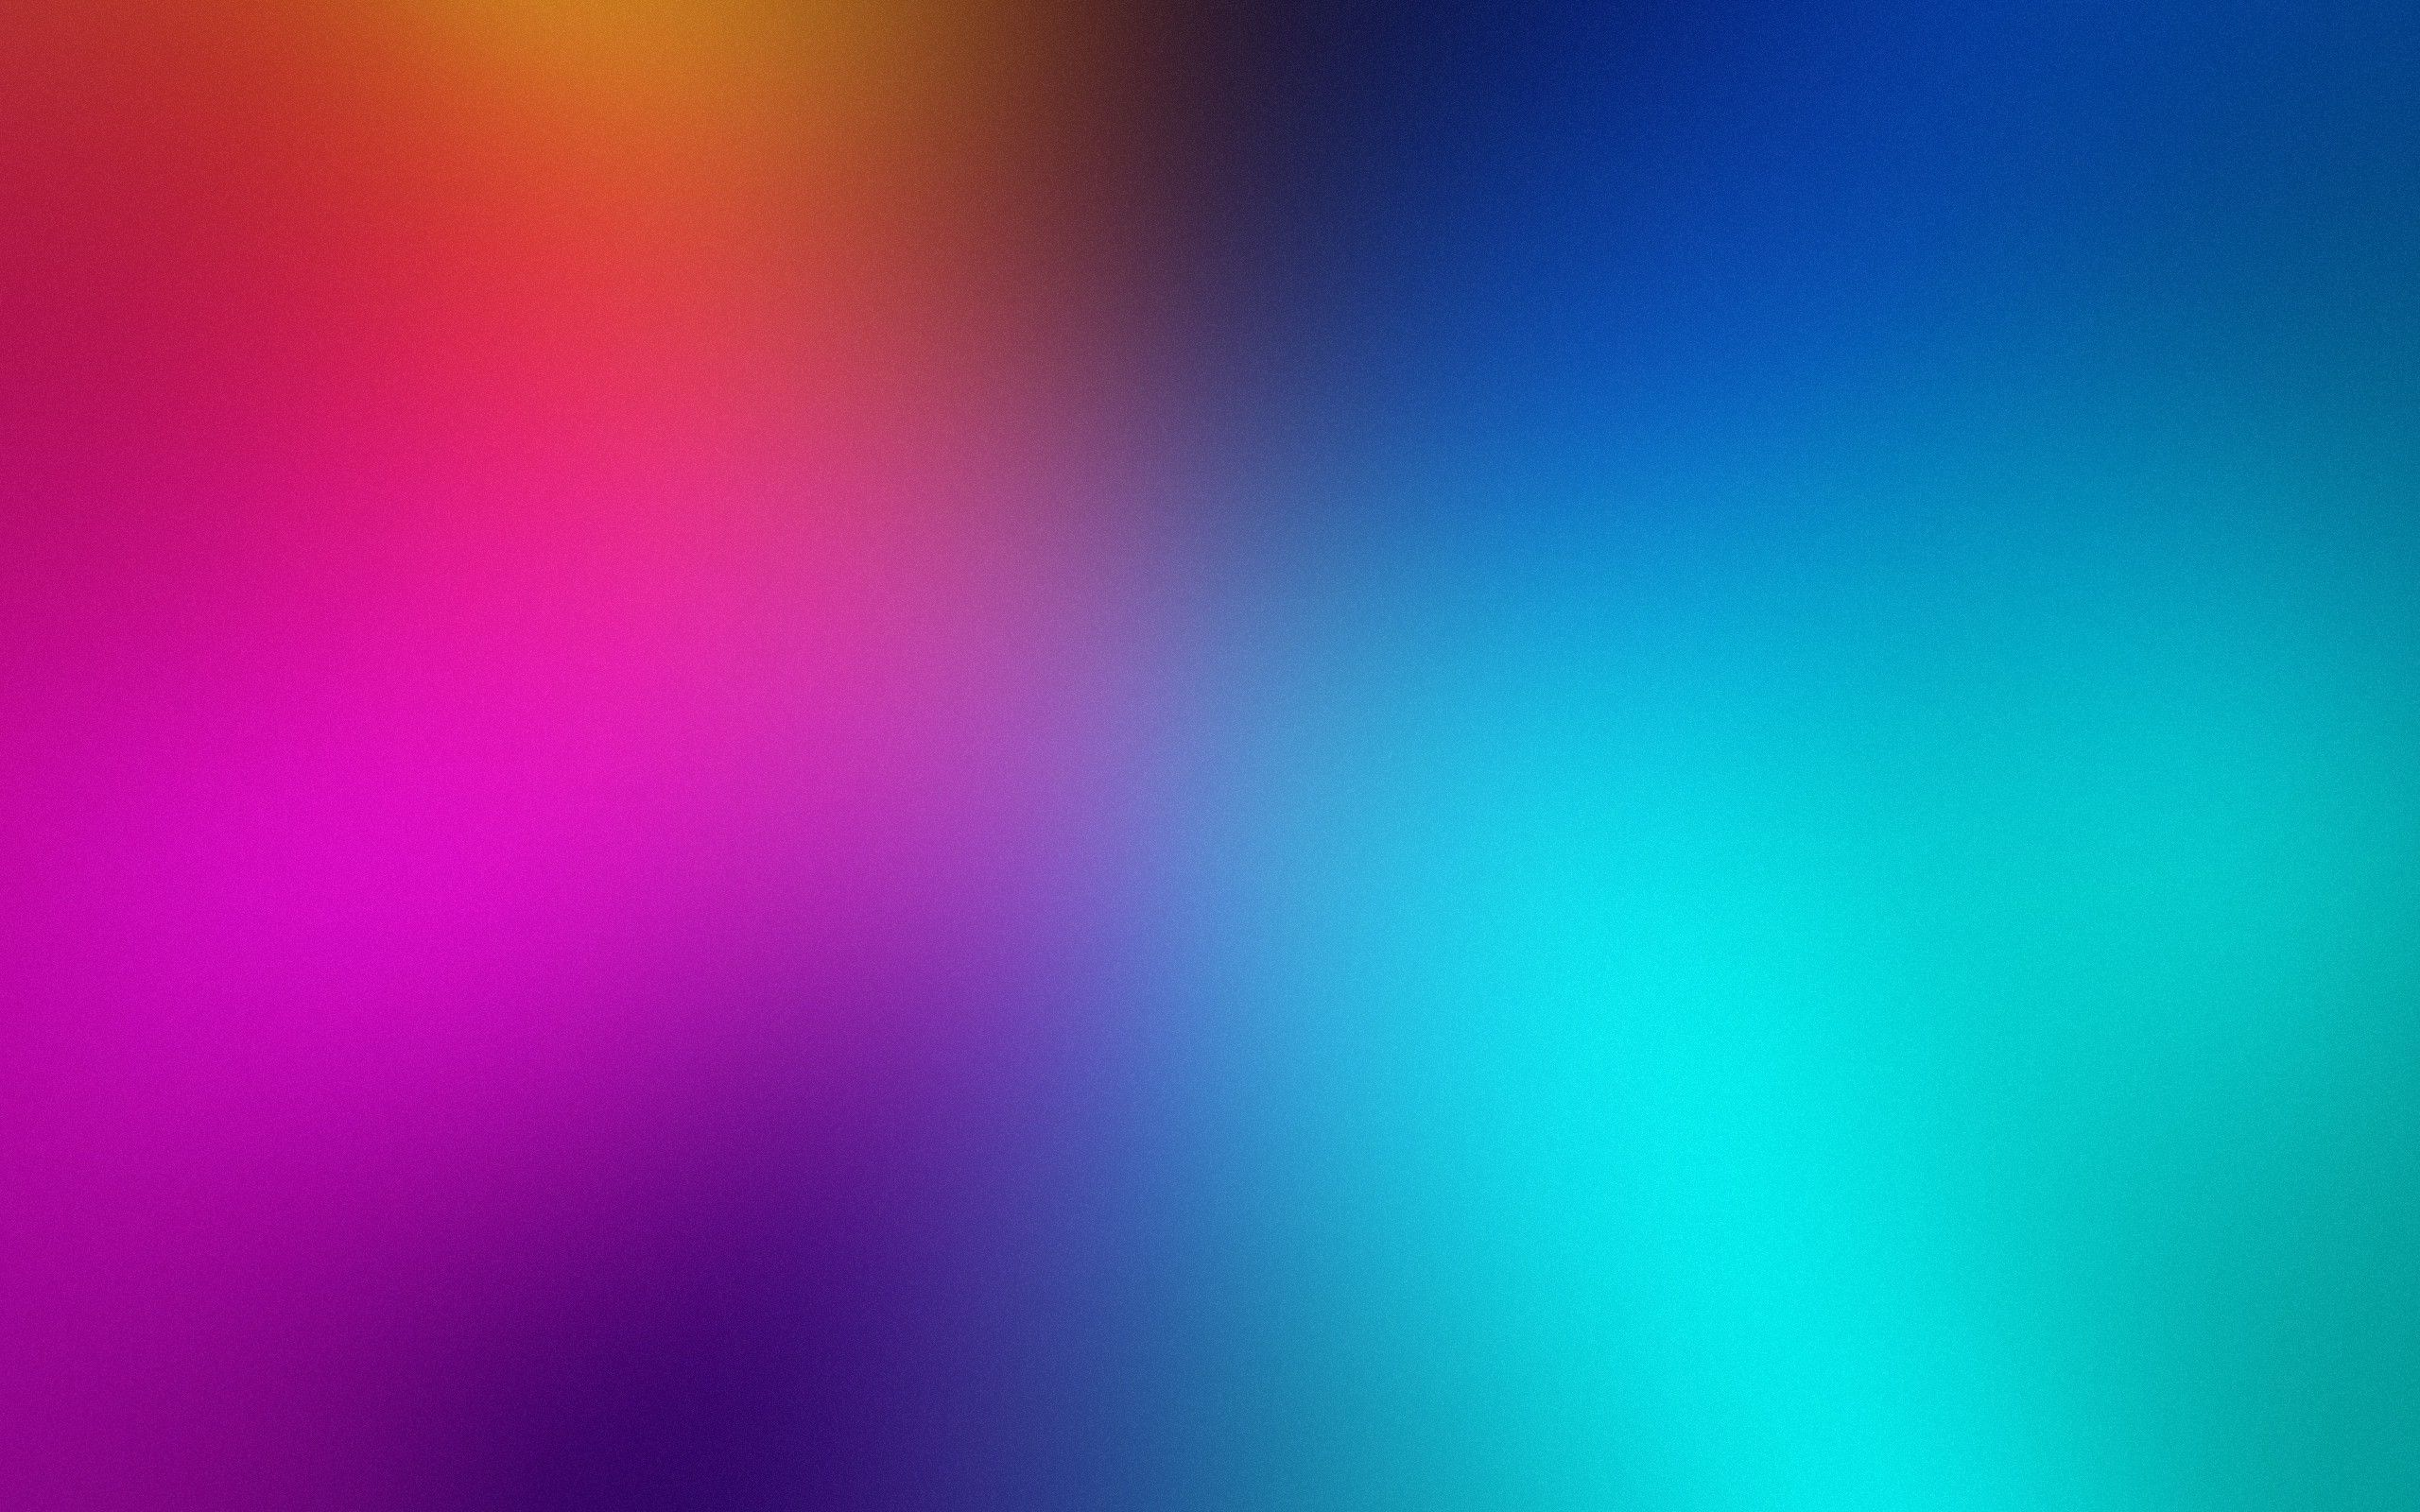 Multicolored gaussian blur